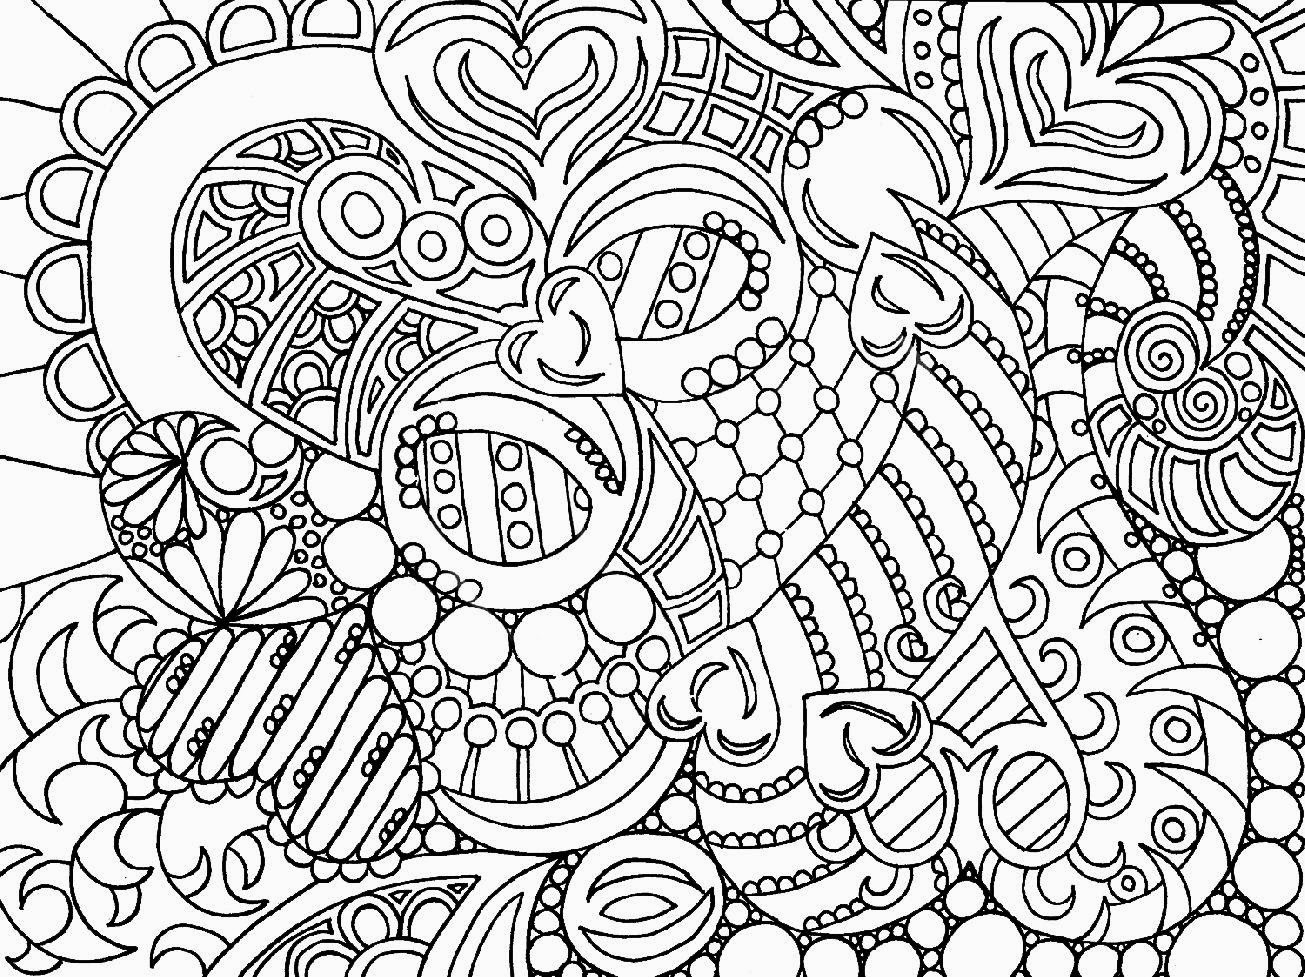 Adult coloring sheets free coloring sheet for Coloring pages to print for adults